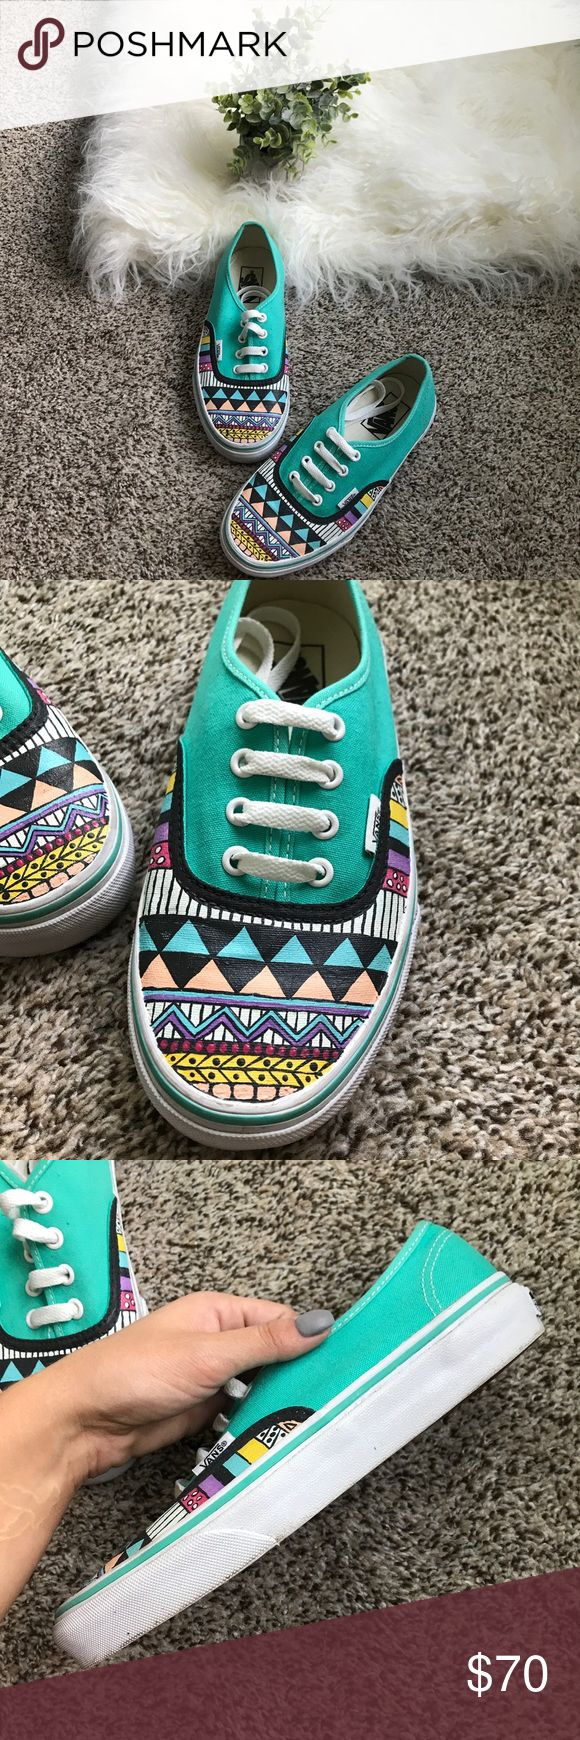 Tribal painted custom teal Vans - size 6.5 Tribal painted custom teal Vans - size 6.5 - custom made on Etsy - only worn a couple of times - very good used condition Vans Shoes Sneakers